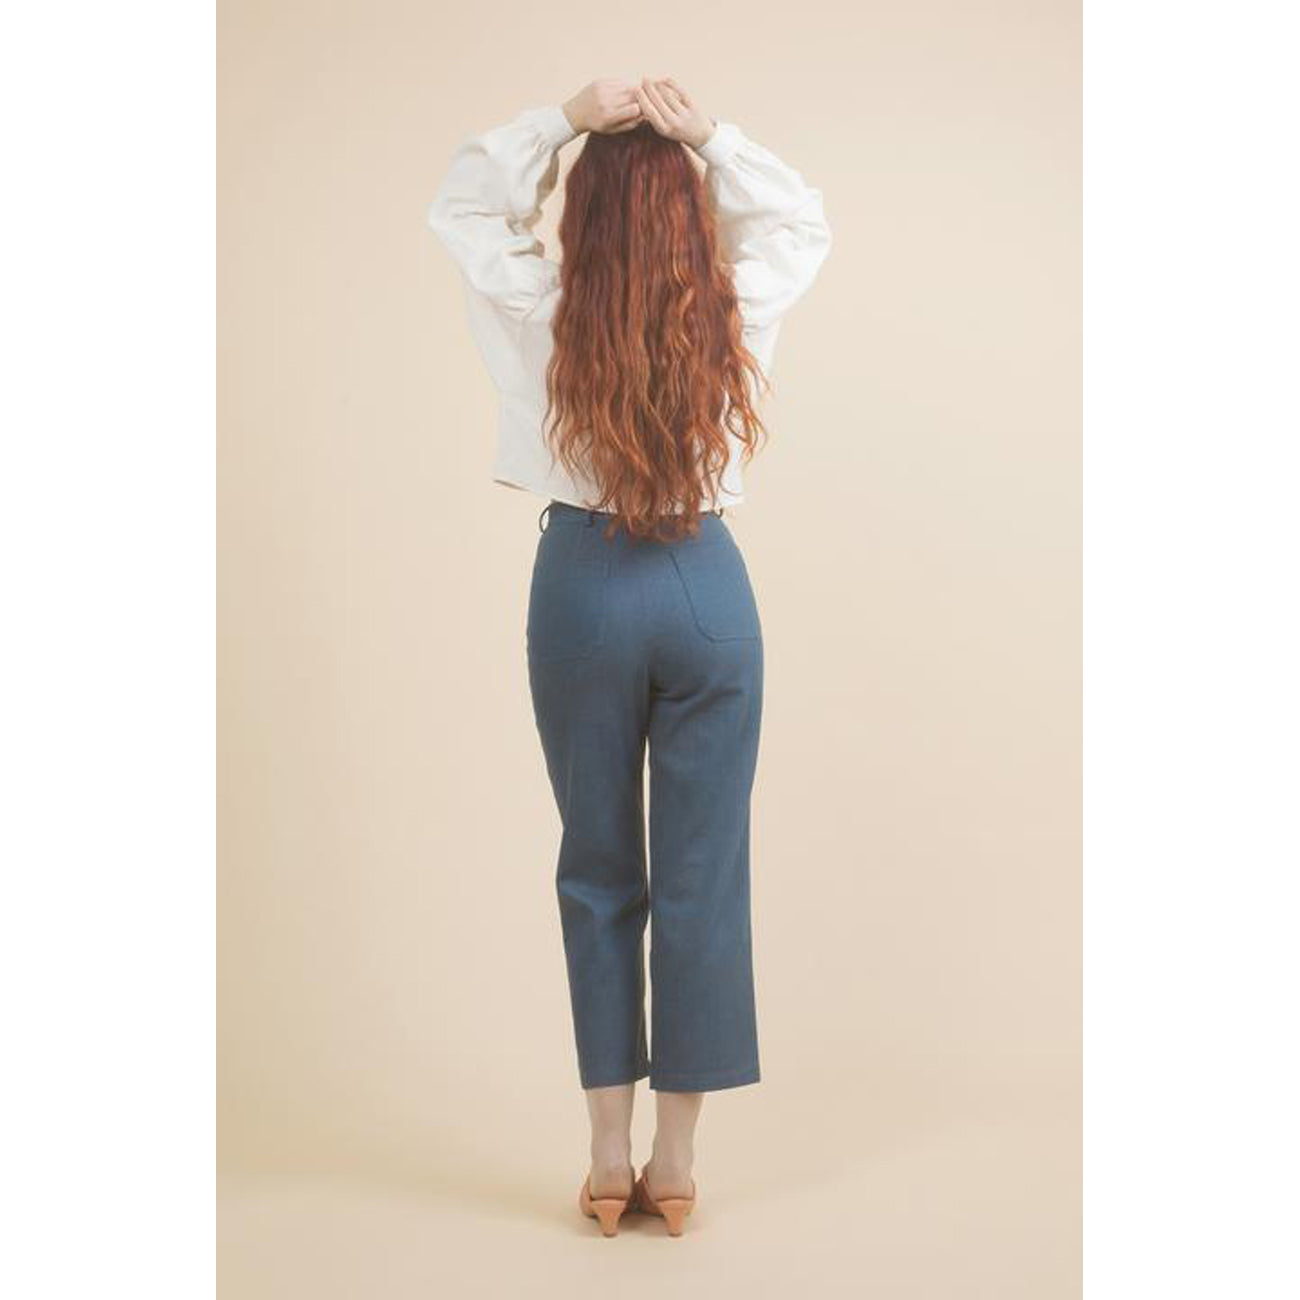 chorus jeans in ultramarine